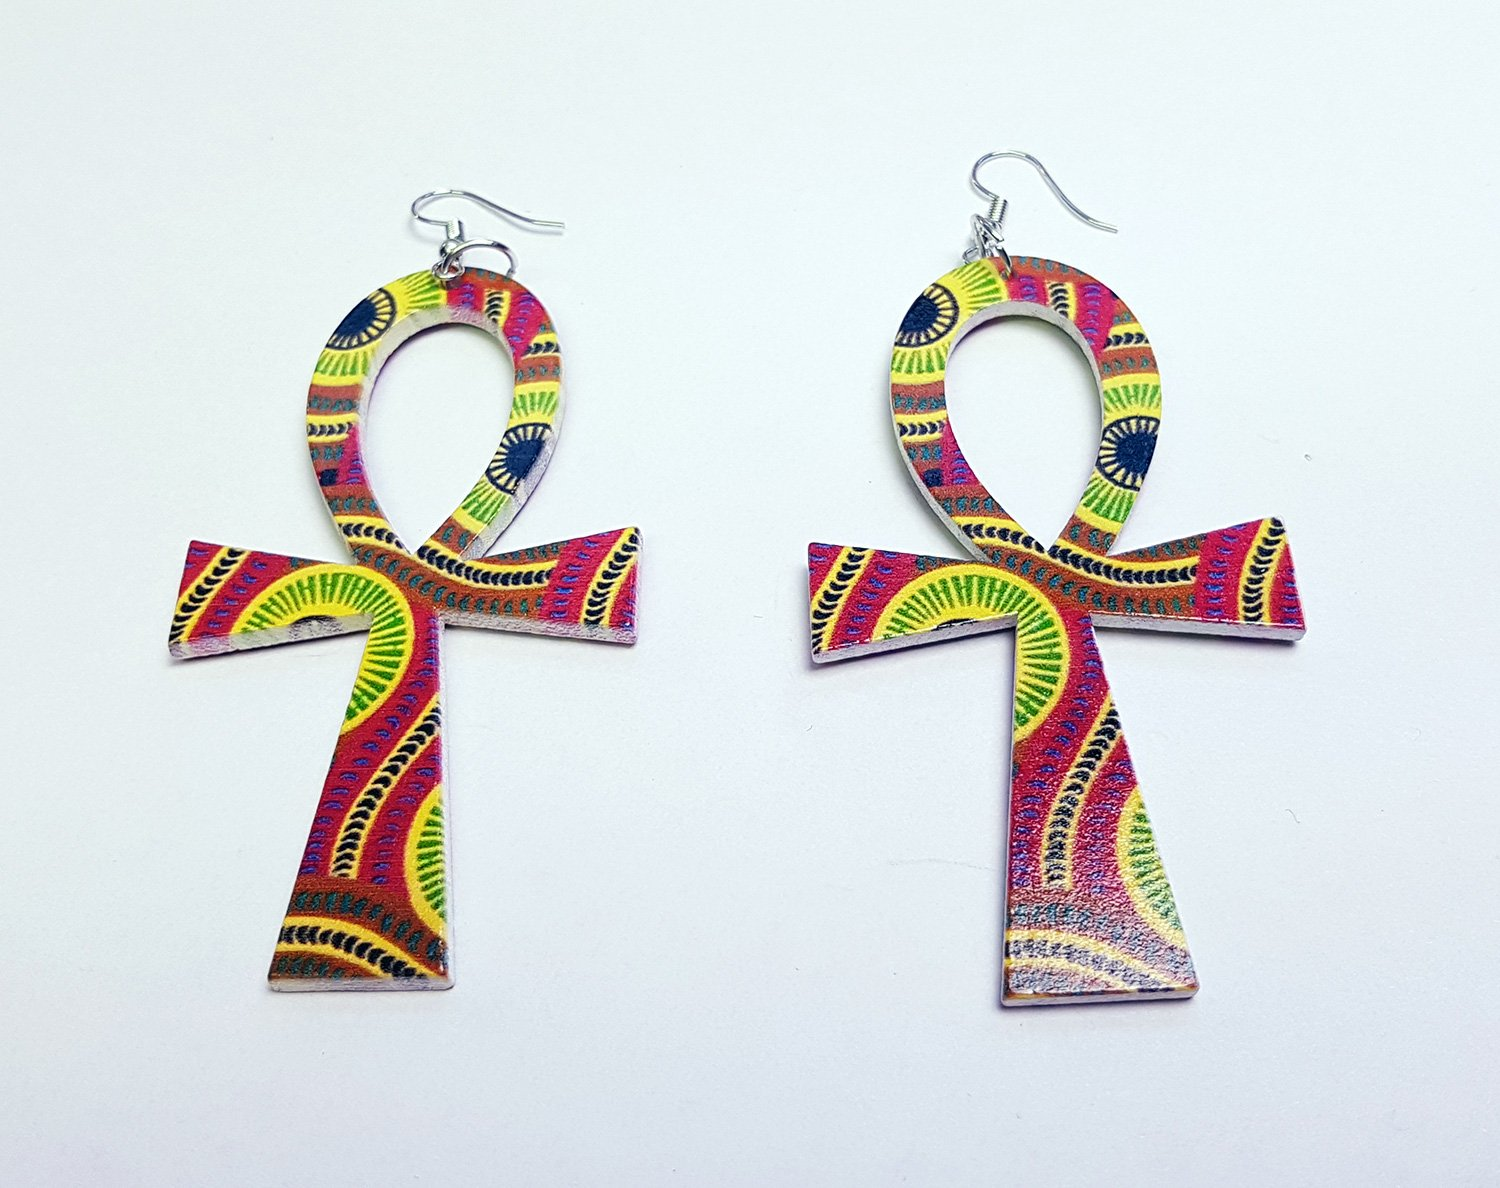 Ankh shaped wooden African Earrings with Print - Yellow / Pink